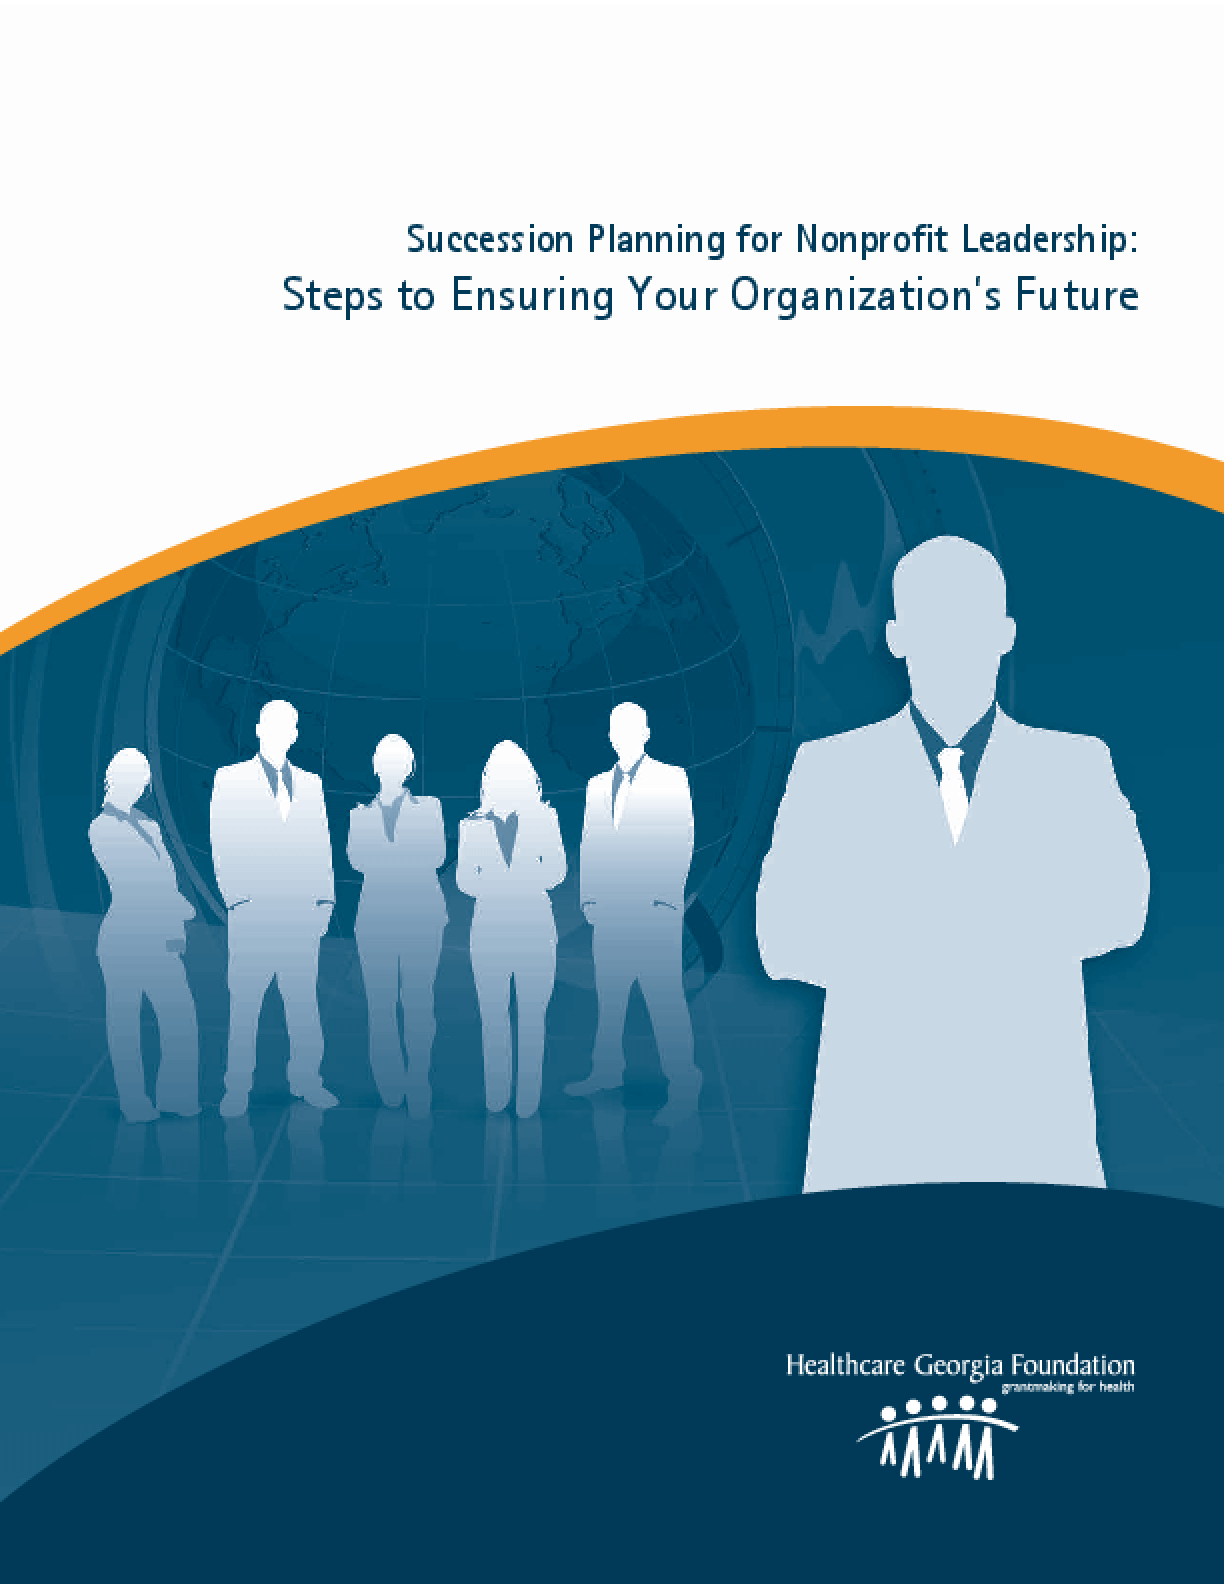 Succession Planning for Nonprofit Leadership: Steps to Ensuring Your Organization's Future